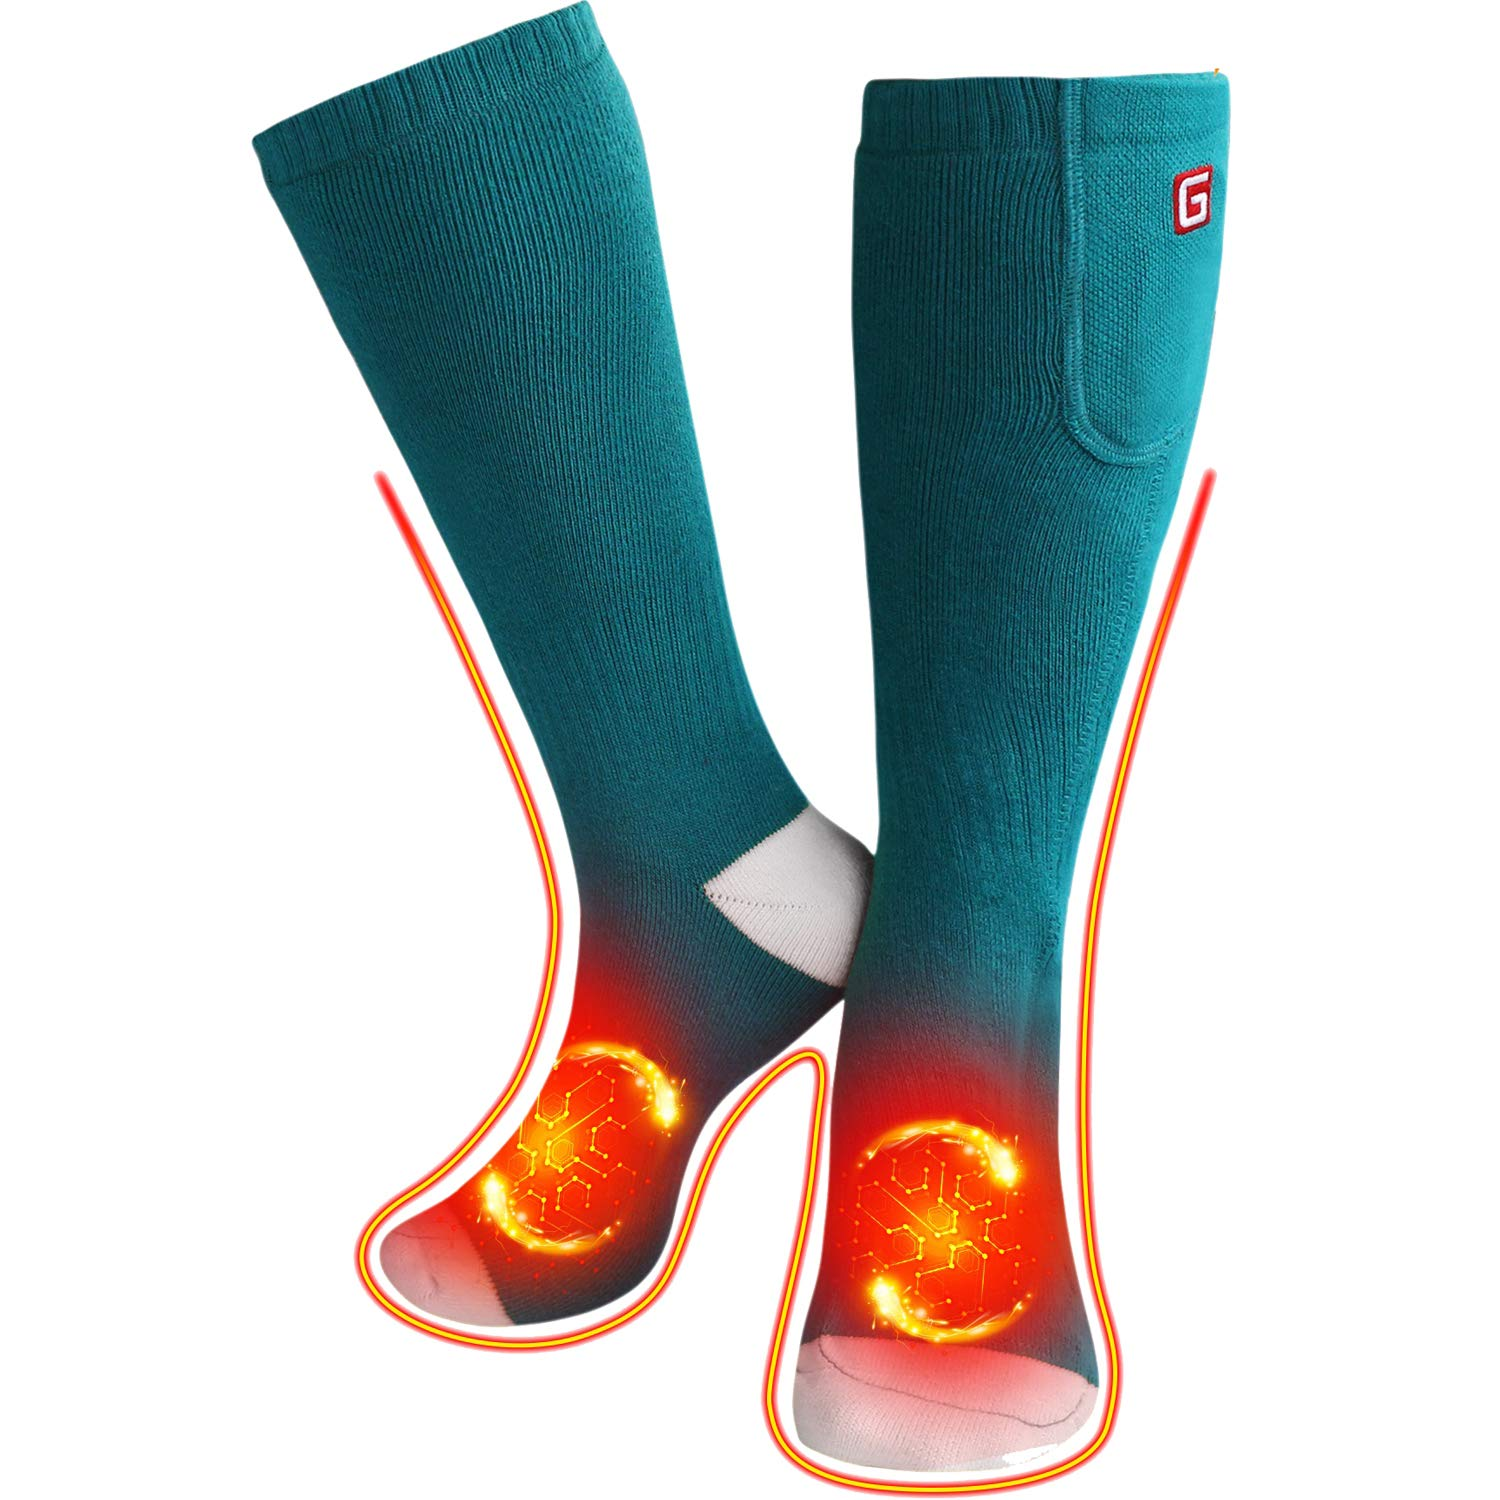 QILOVE Men Women Electric Heated Socks with 3.7V Rechargeable Batteries by QILOVE